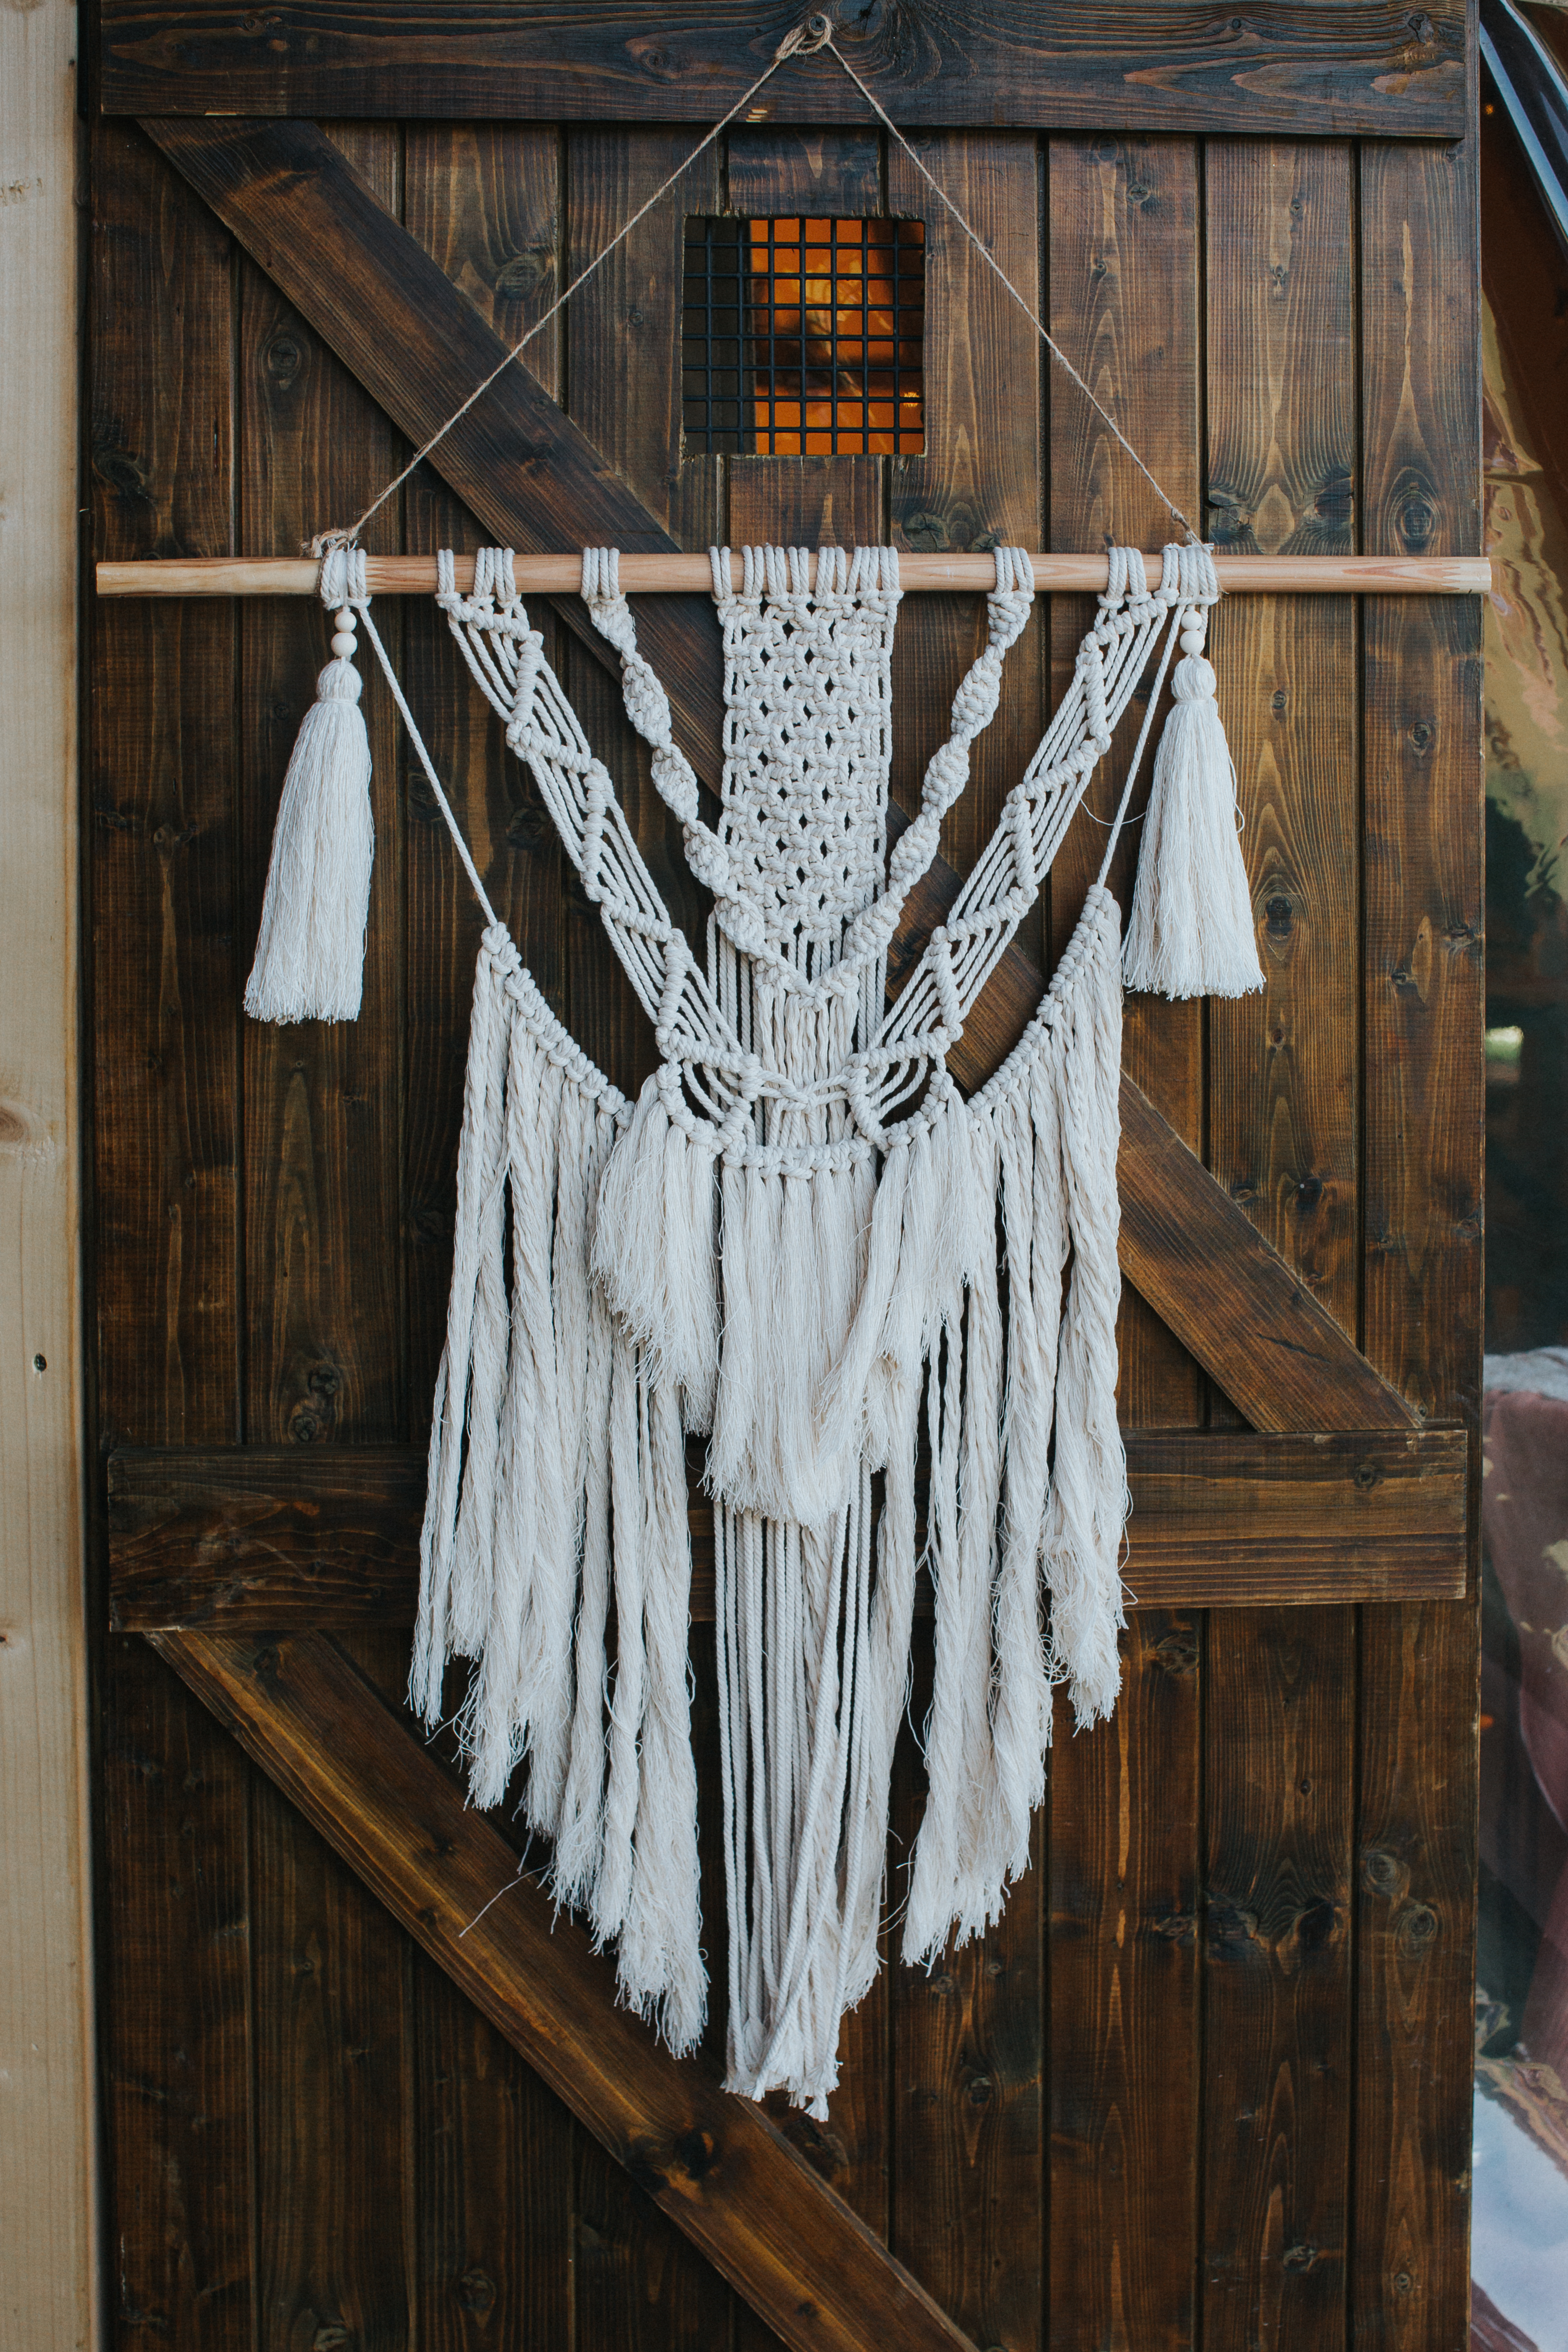 Macrame Hanging - Medium